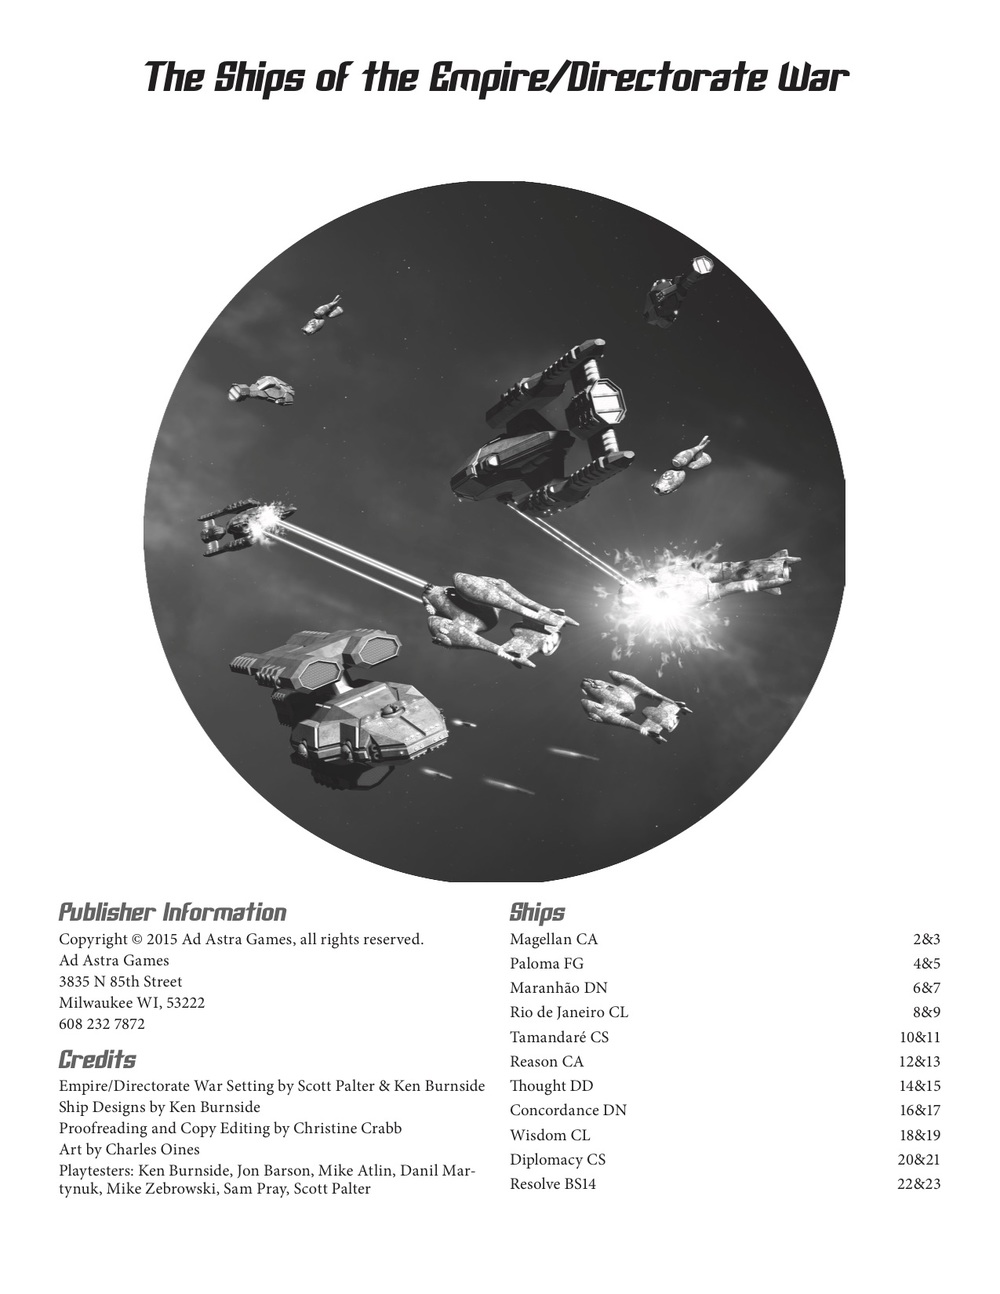 Squadron strike second edition ssd book pdf ad astra games second edition ssd book pdf ccuart Image collections